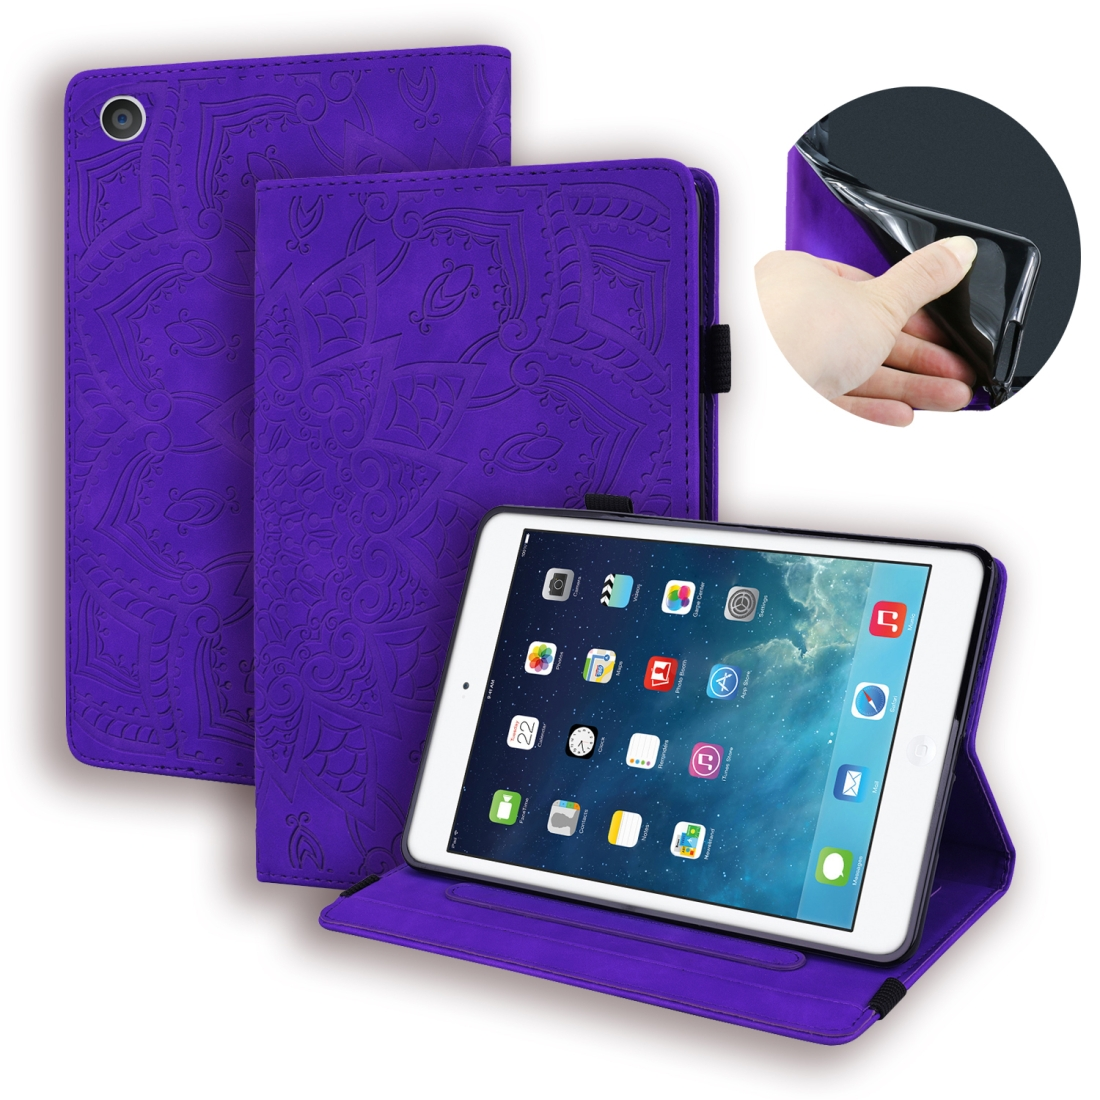 iPad 2 Case Fits iPad 2, 3, Calf Skin Patterned Leather With Sleeves, Pen Holder & Band (Purple)